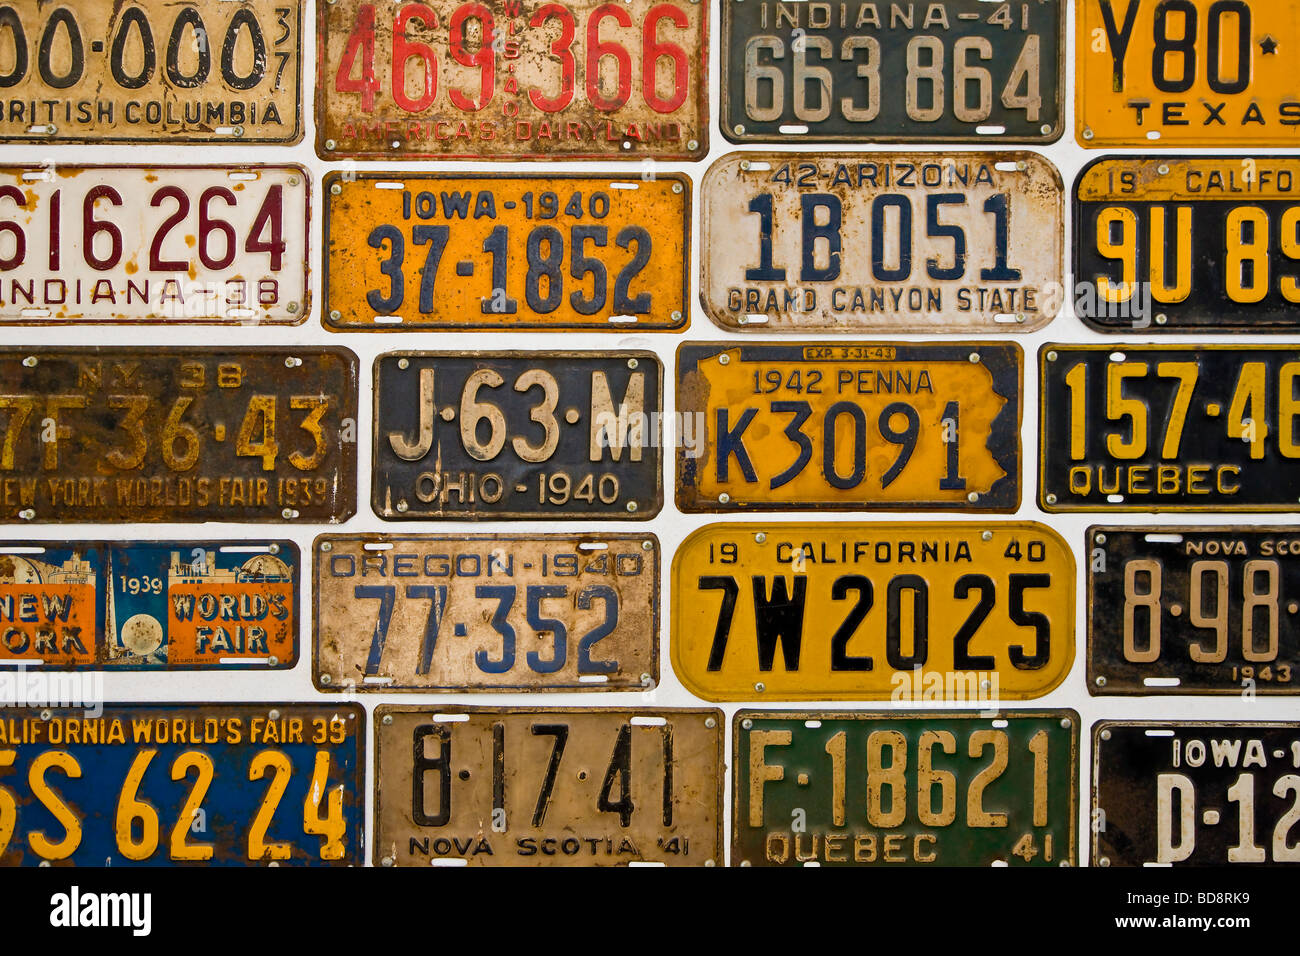 Stunning Old Registration Plates Pictures Inspiration - Classic ...